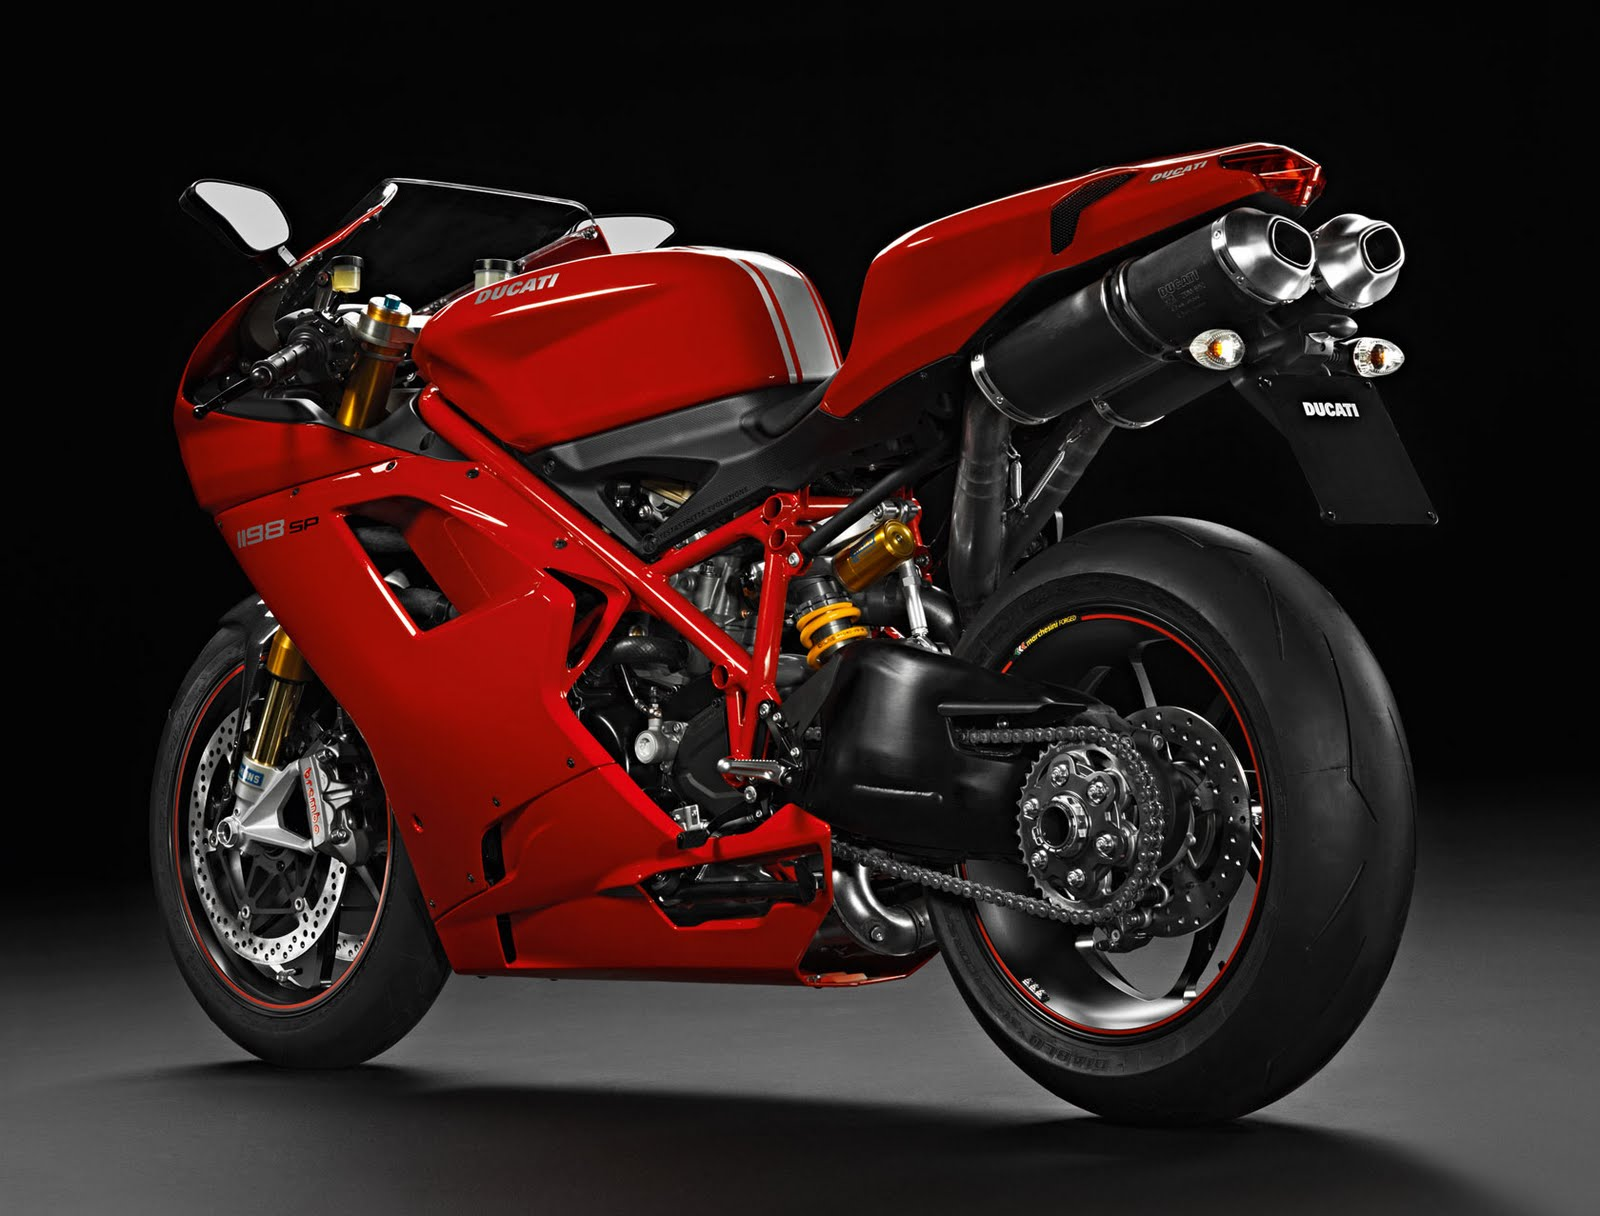 top motorcycle wallpapers 2011 ducati 1198sp superbike. Black Bedroom Furniture Sets. Home Design Ideas